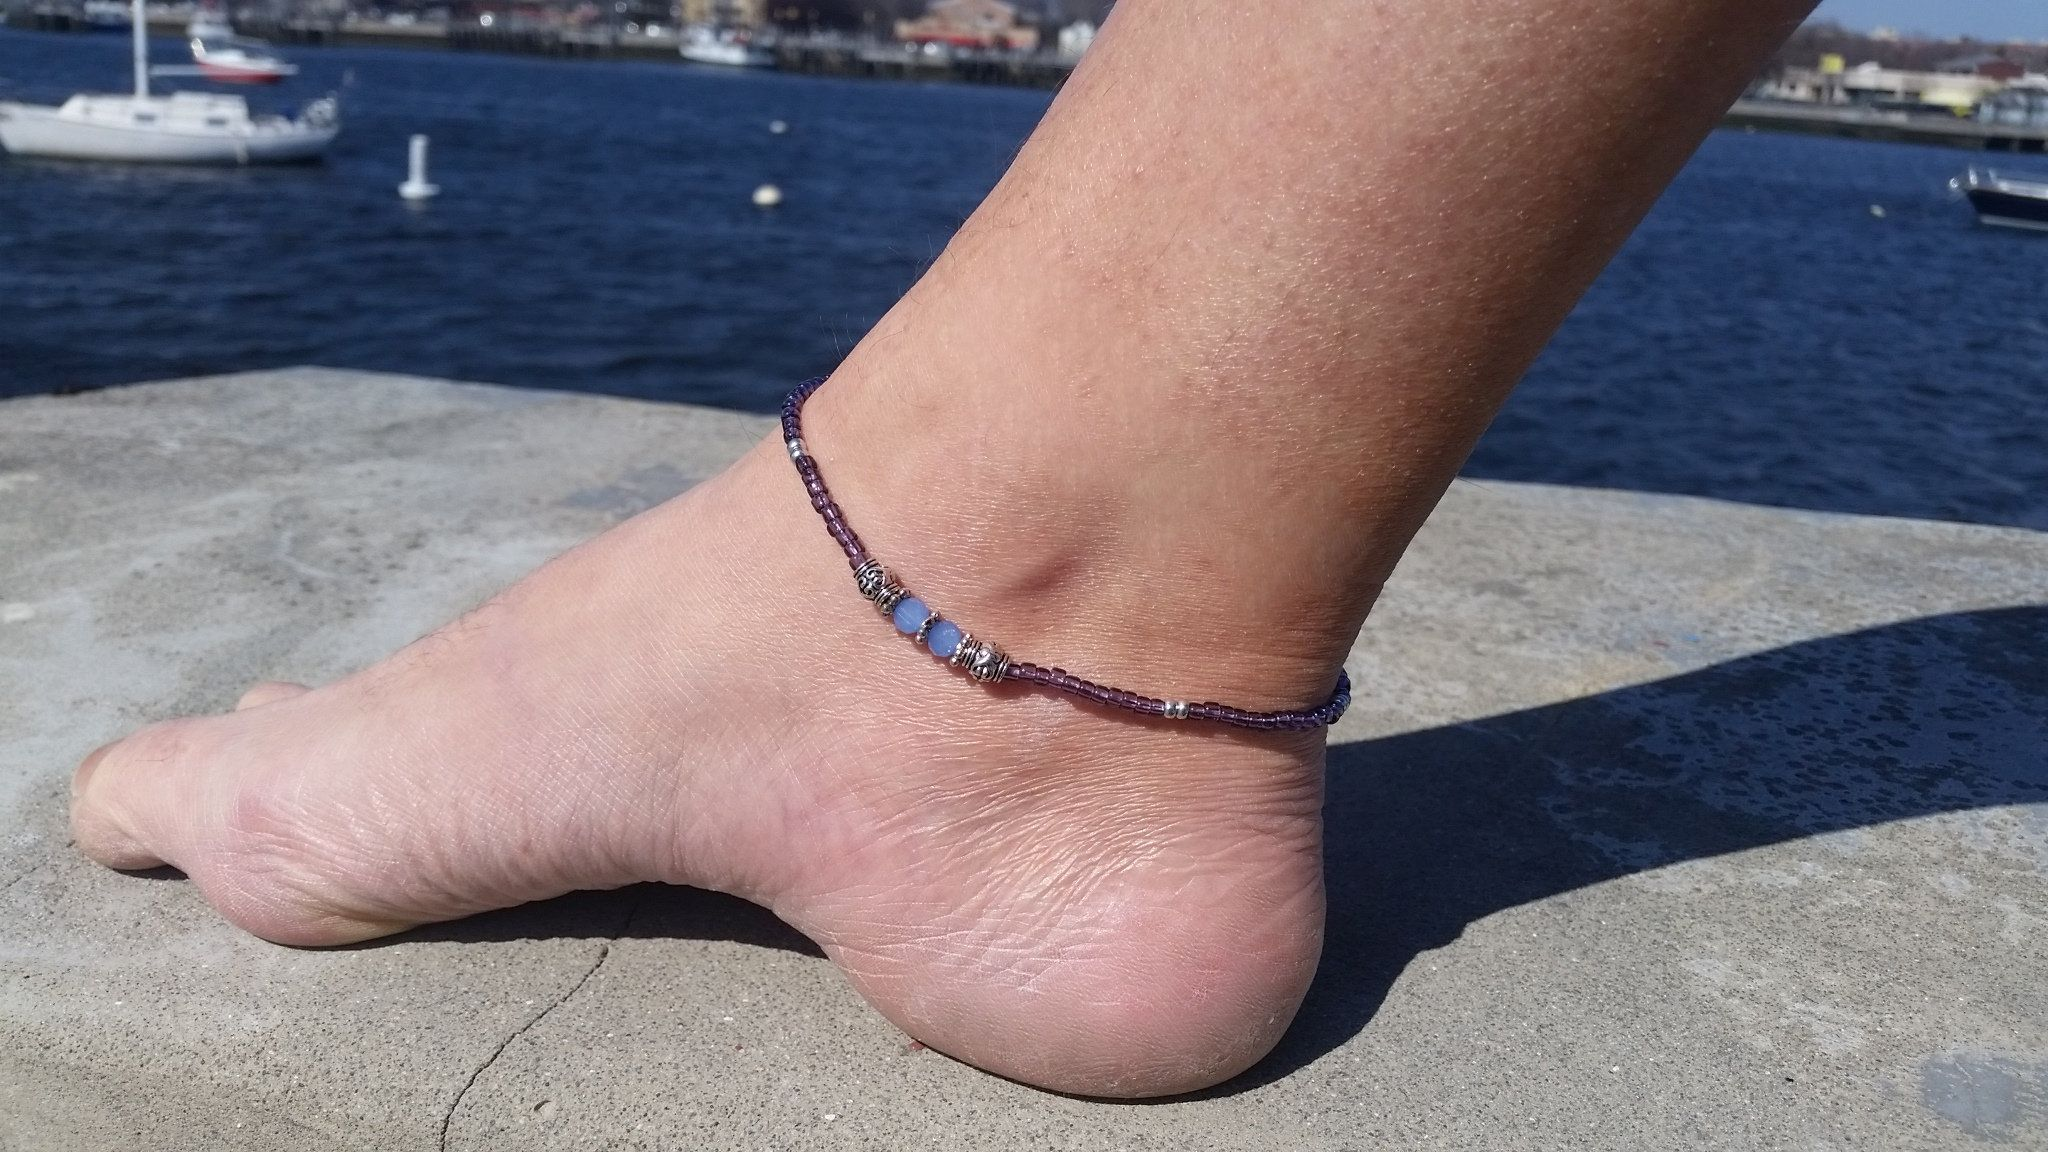 market fusion boho for il anklets barefoot ethnic tribal jewelry colorful her payal anklet etsy